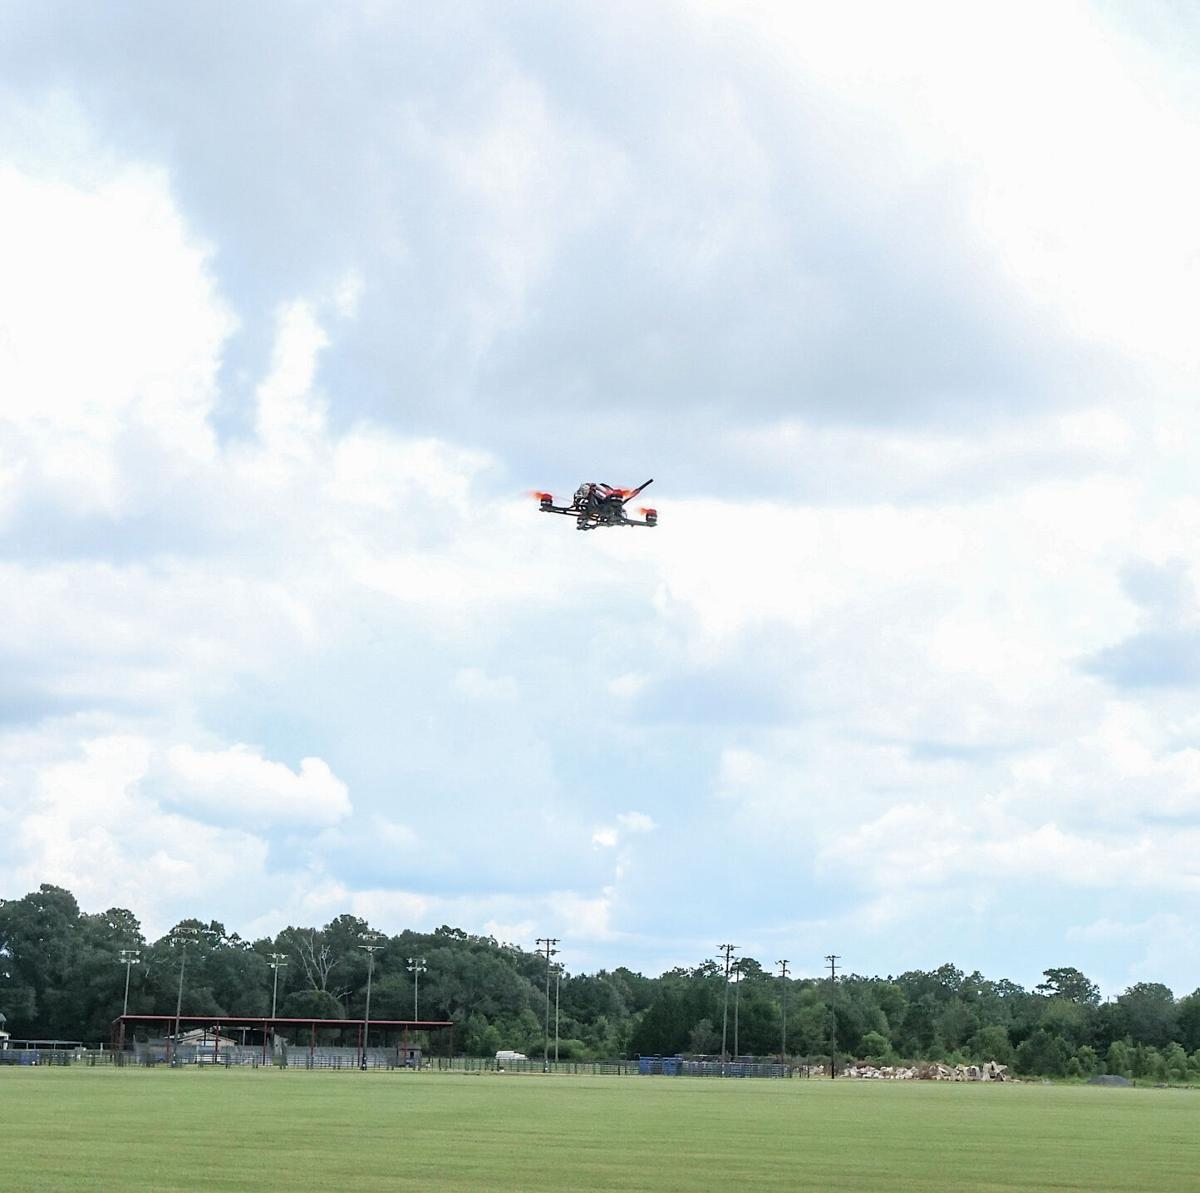 Drone at Sports Park003.JPG